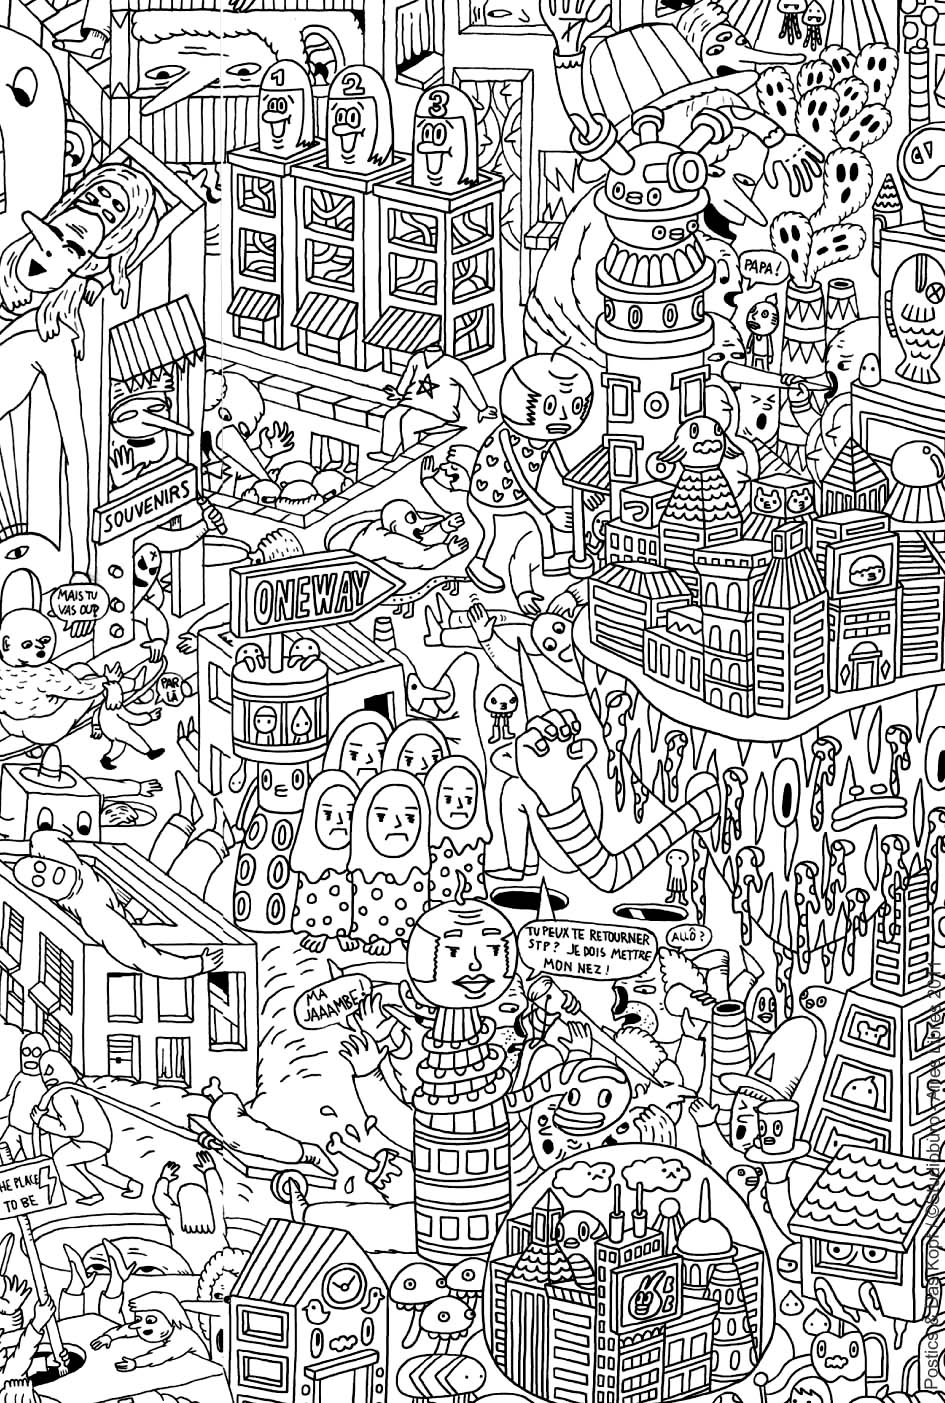 Very complex coloring page of an imaginary city with robots and other strange creatures - 3